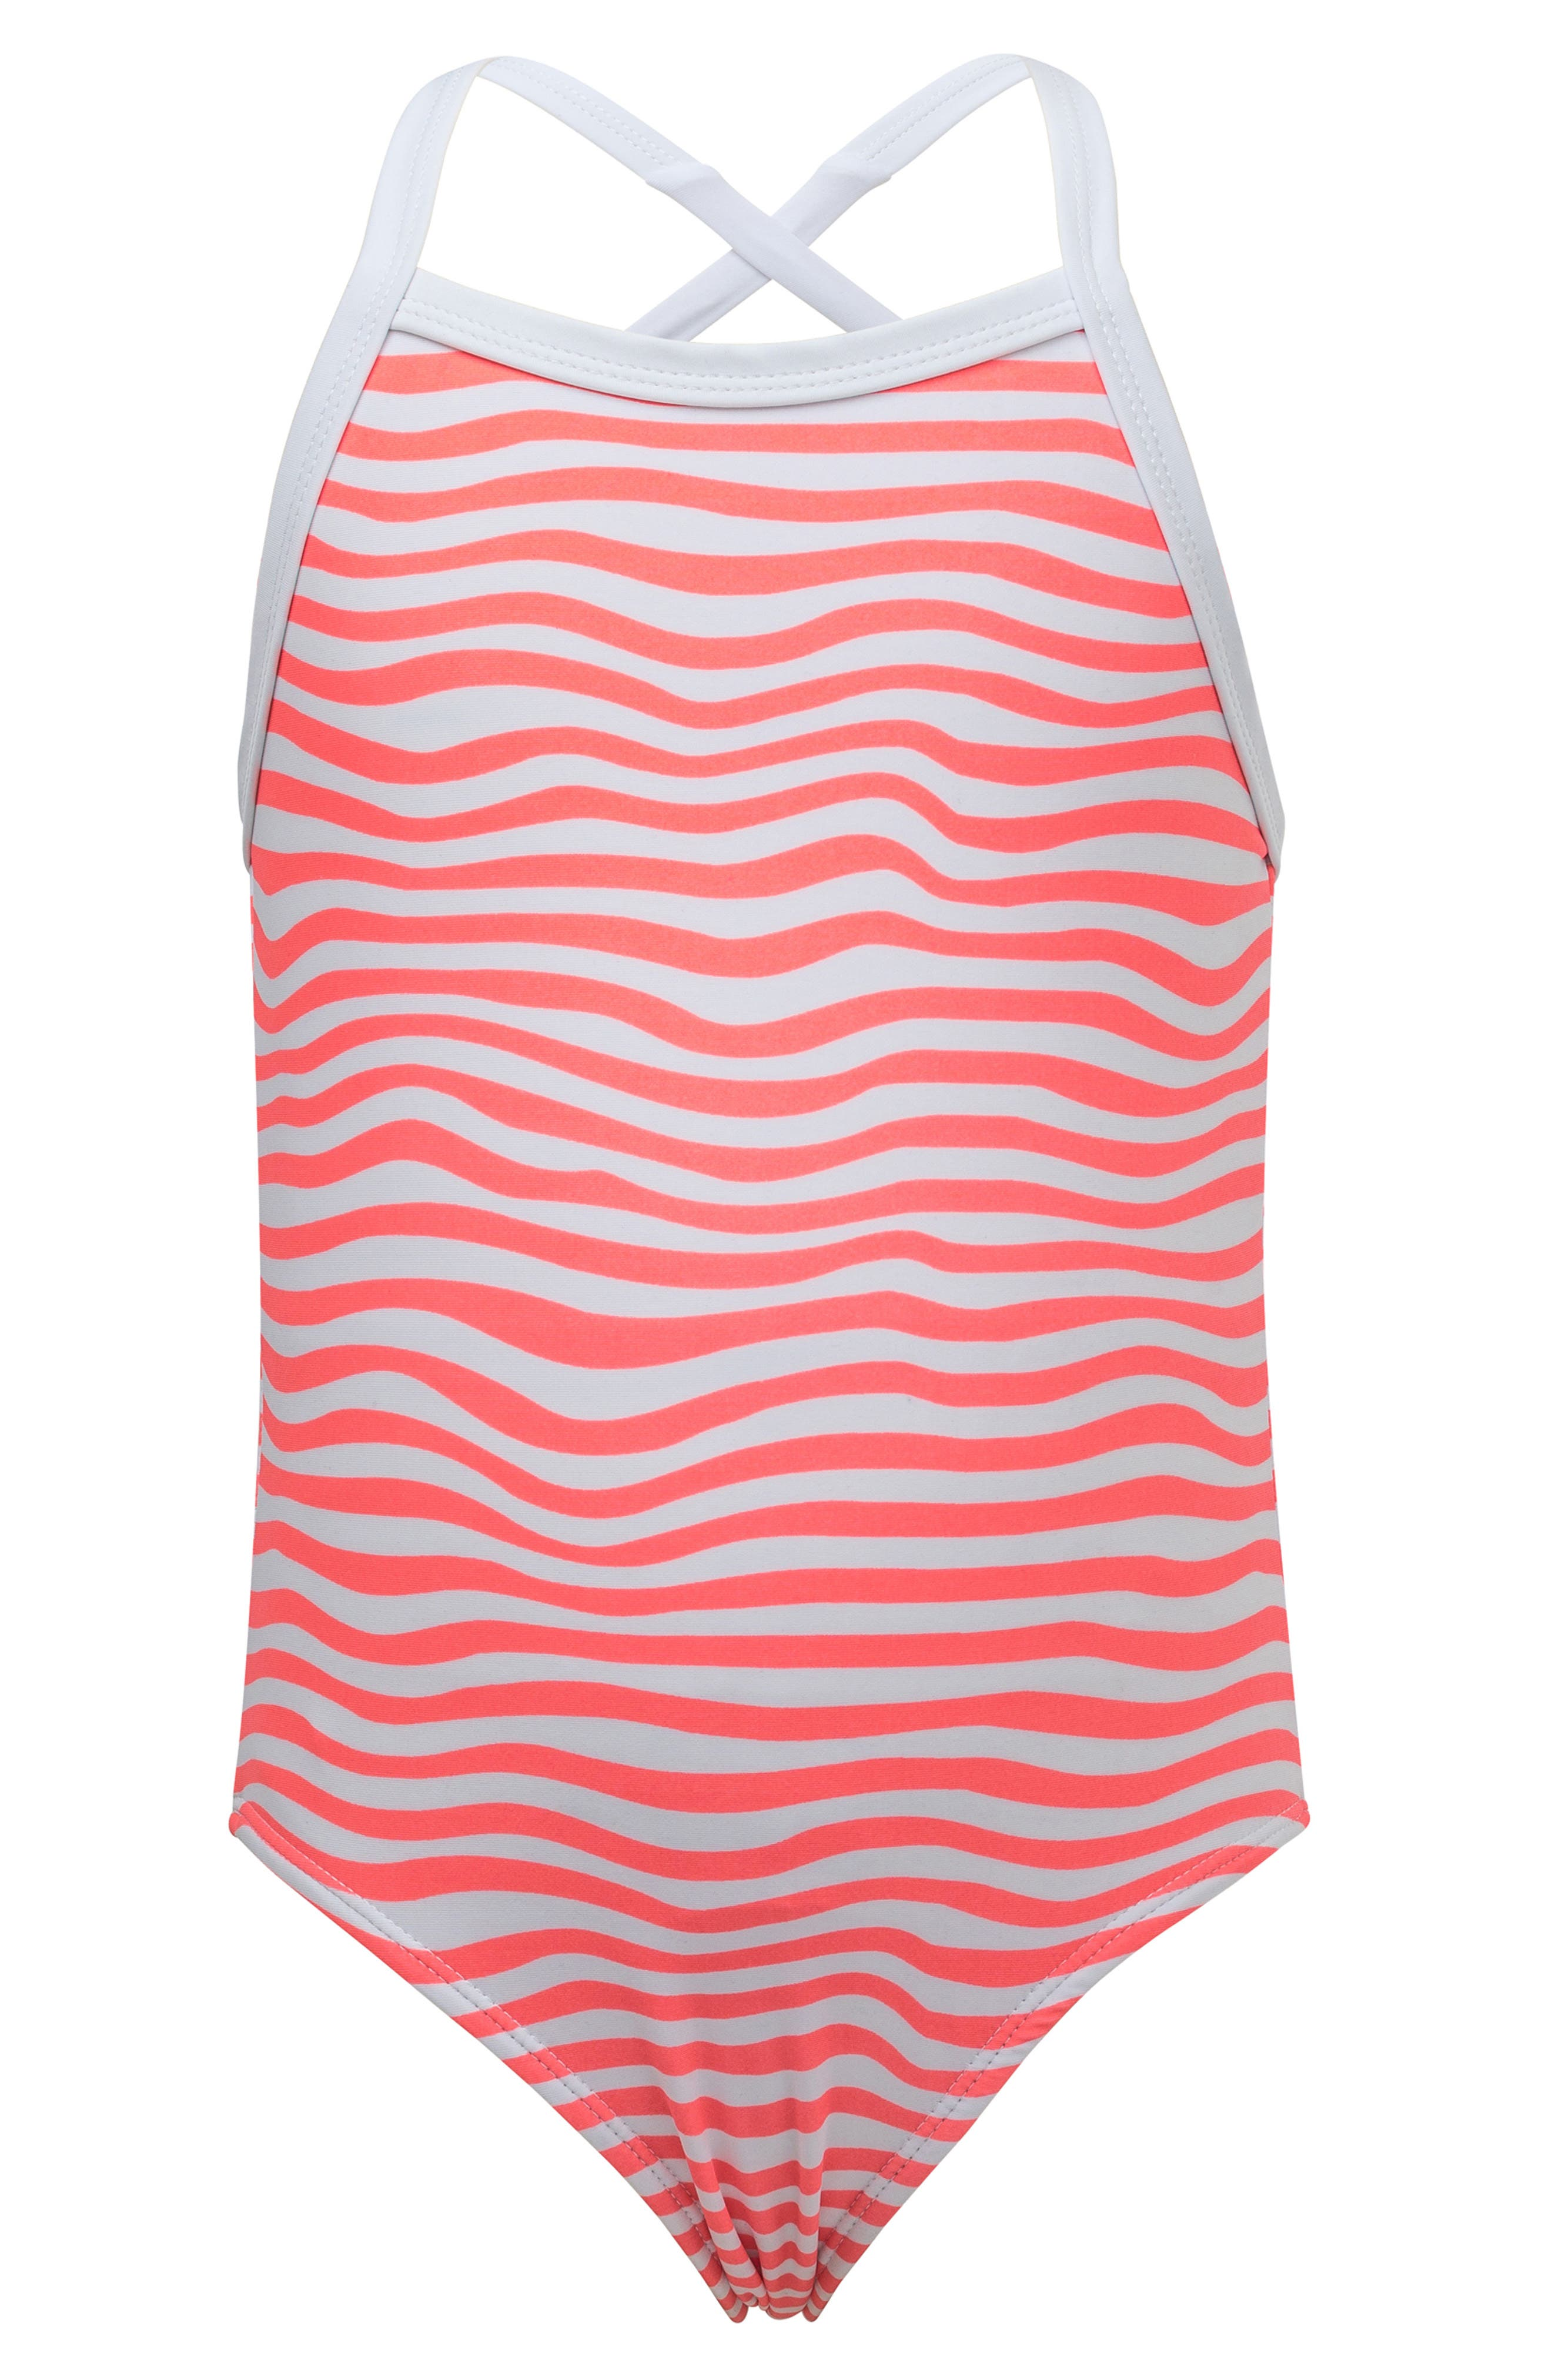 Orange Crush Stripe One-Piece Swimsuit, Main, color, CORAL/ WHITE STRIPES